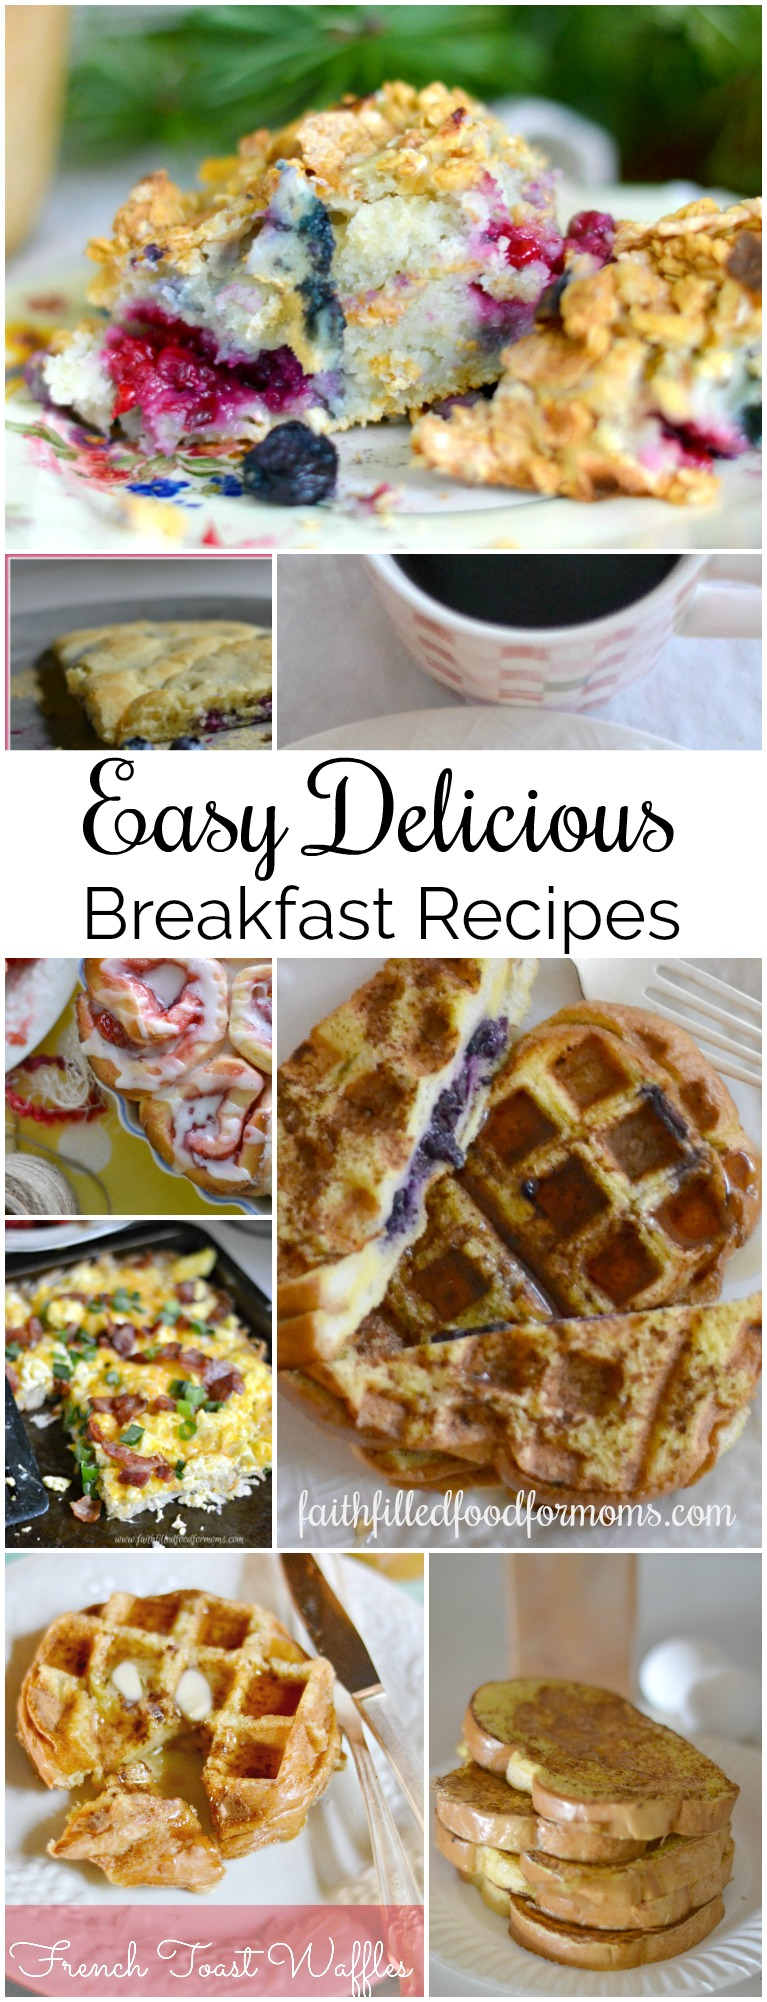 Easy Delicious Breakfast Recipes